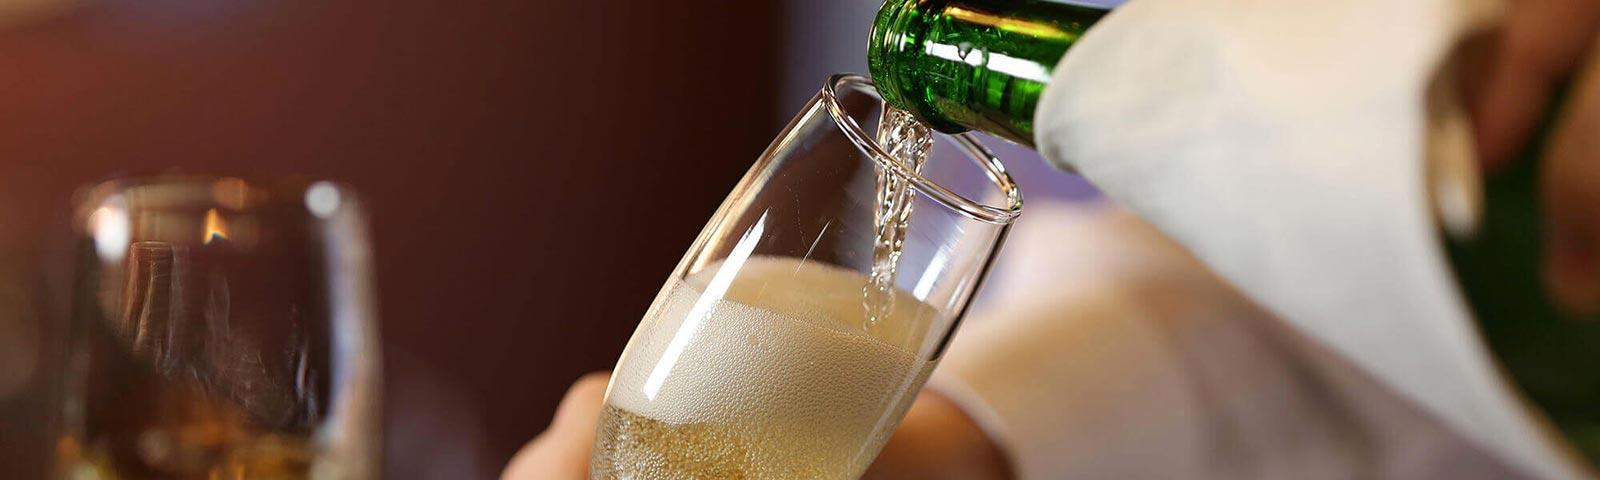 Champagne poured into a glass flute.